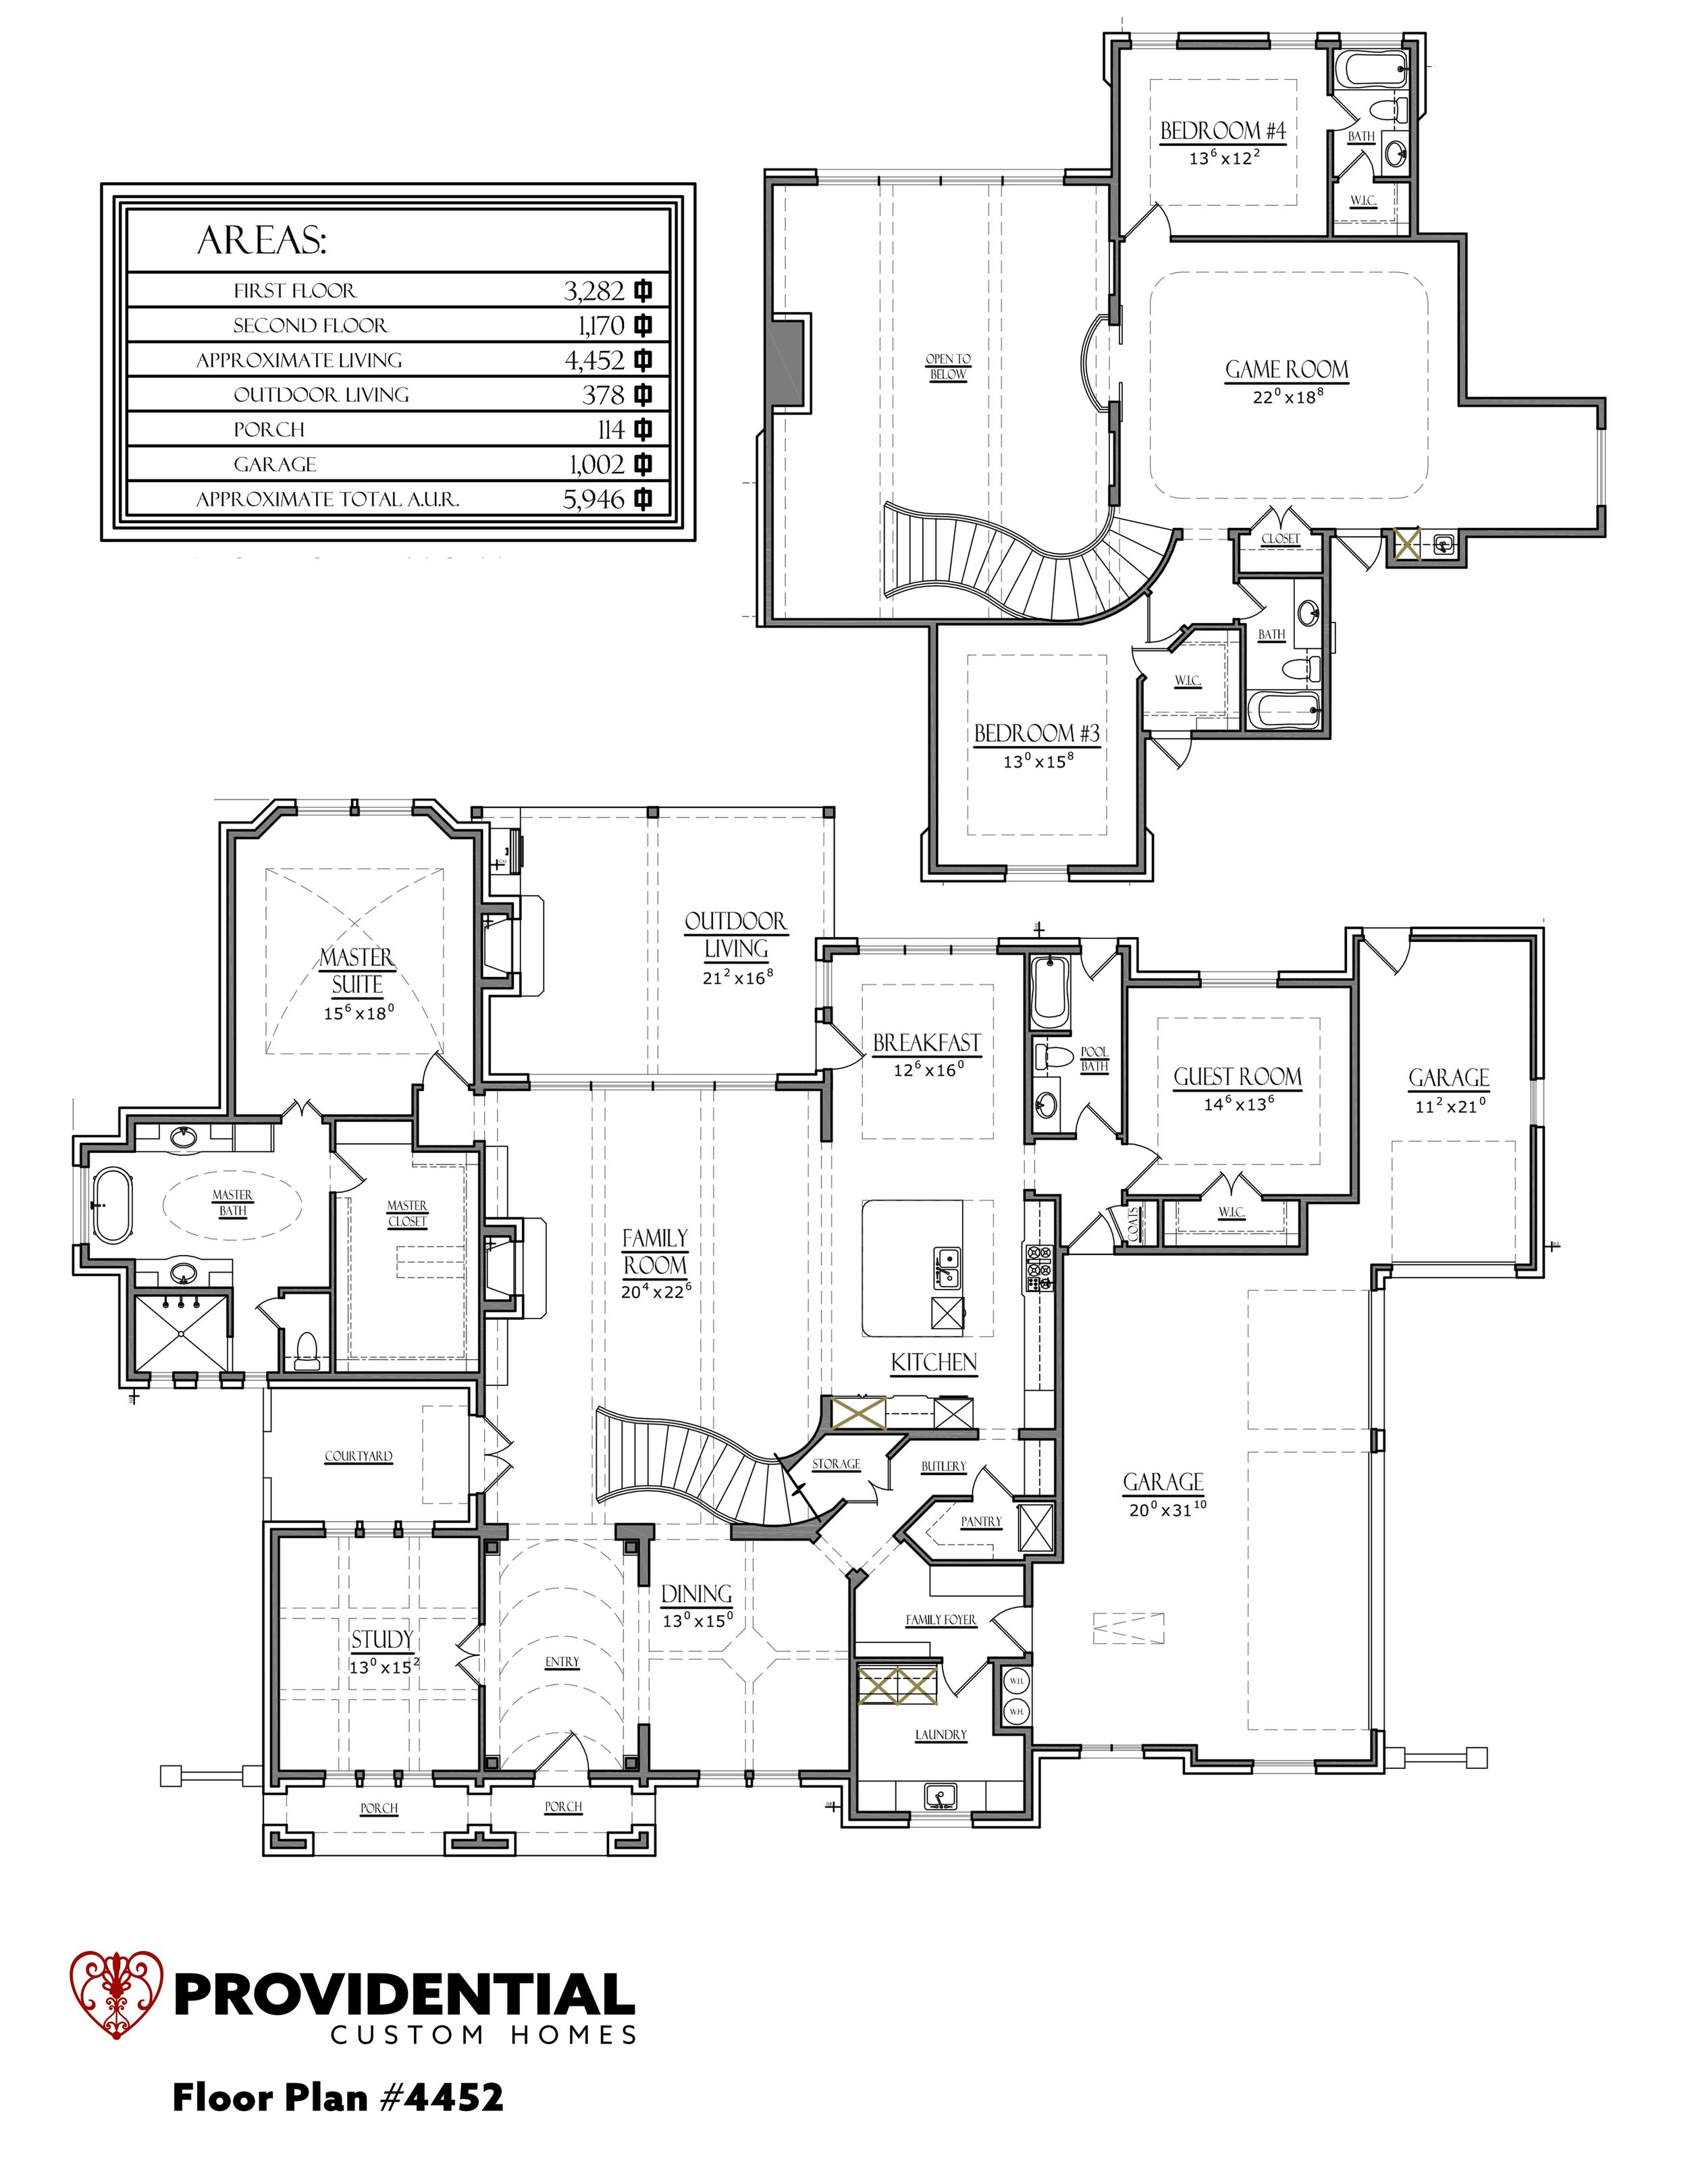 The FLOOR PLAN #4452.jpg